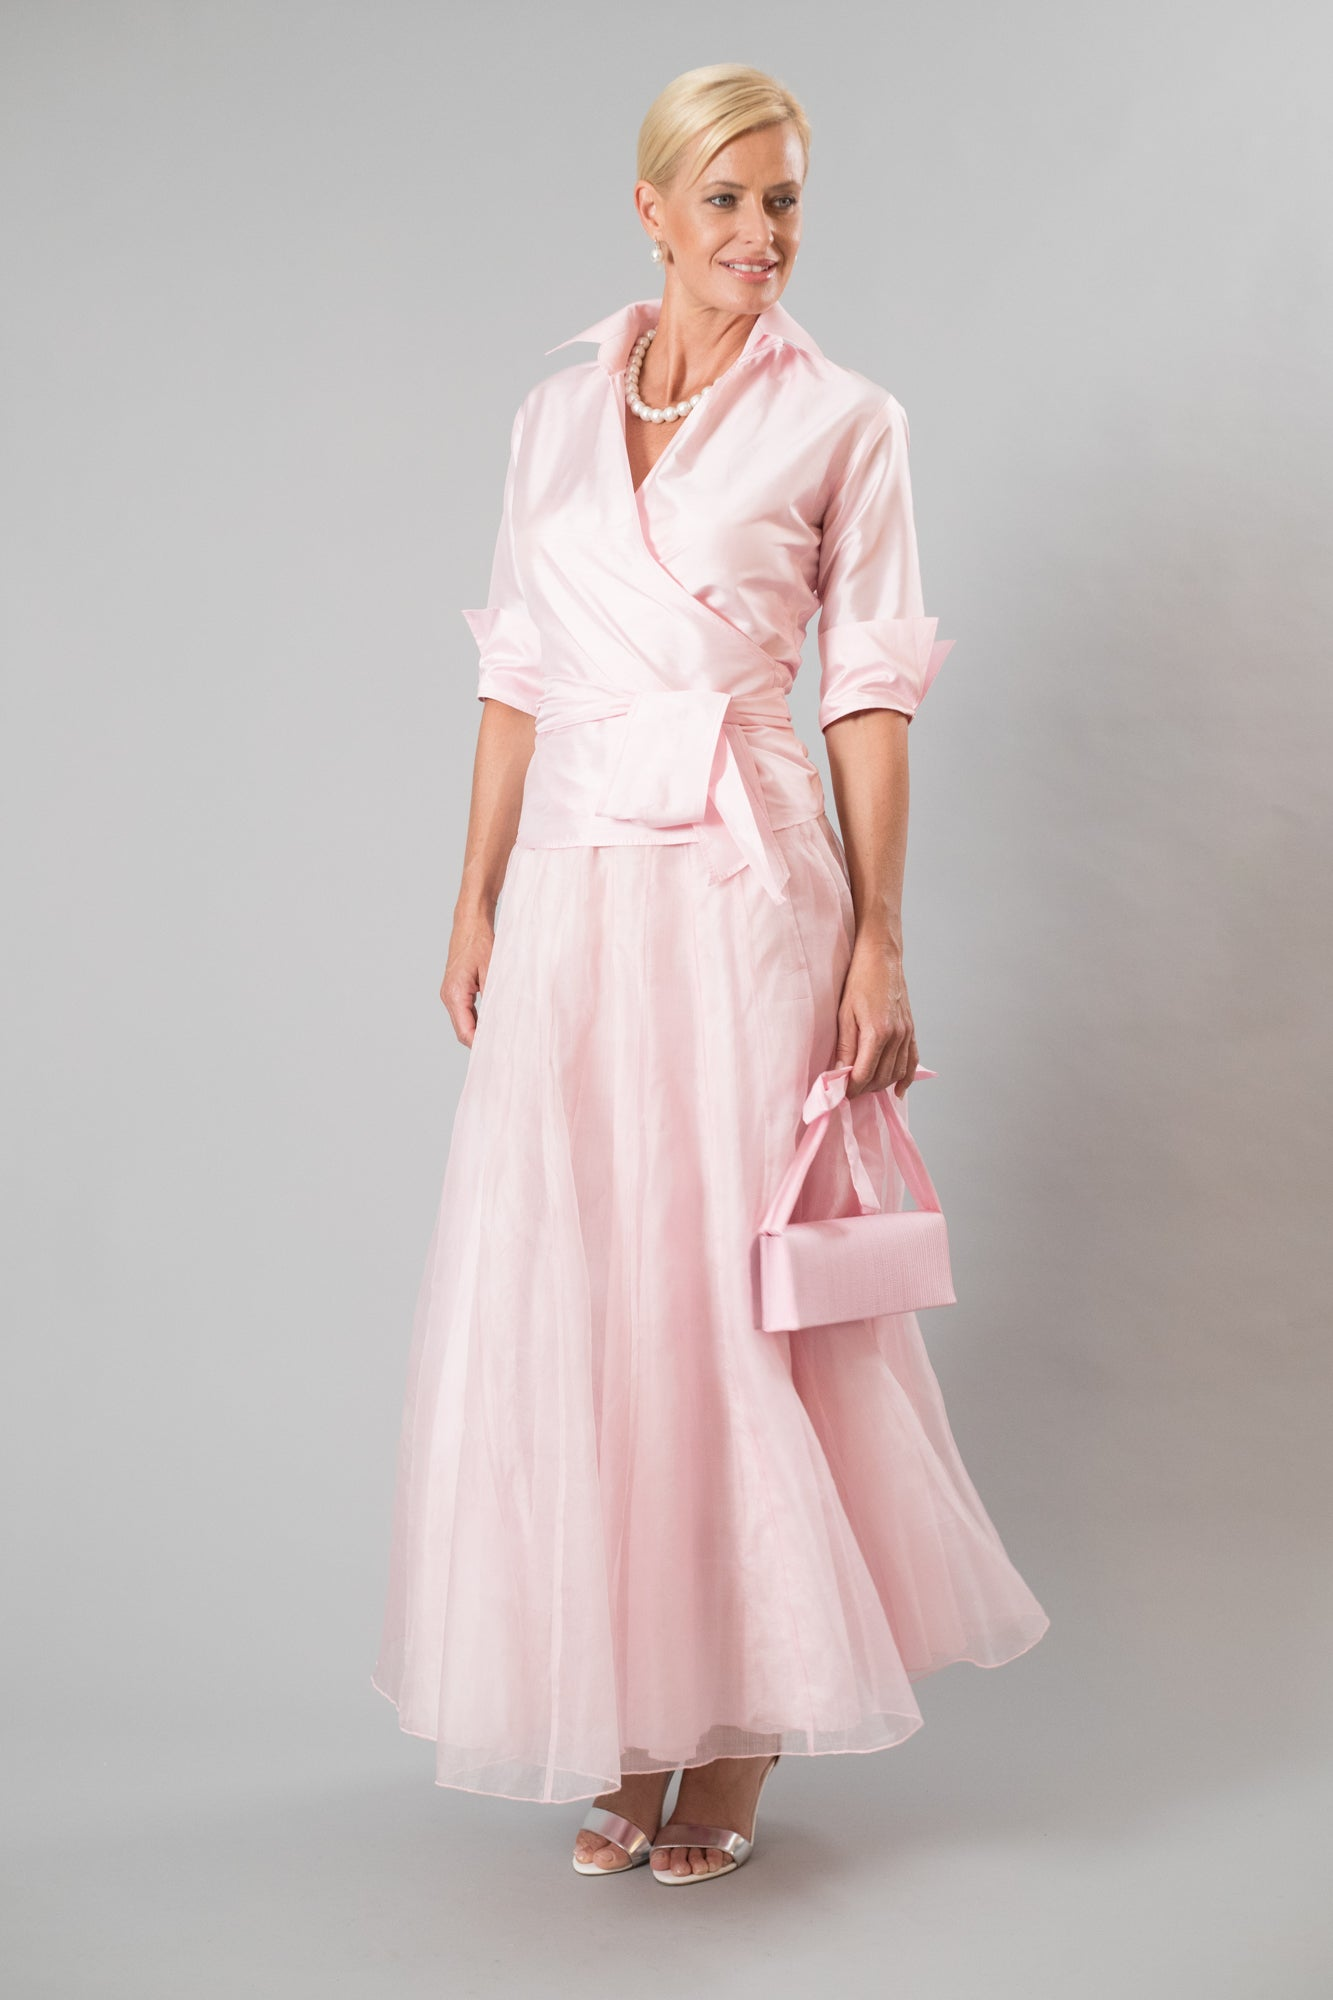 6e4f2024ba7 Soft pink two piece outfit for the modern and elegant mother of the bride   groom